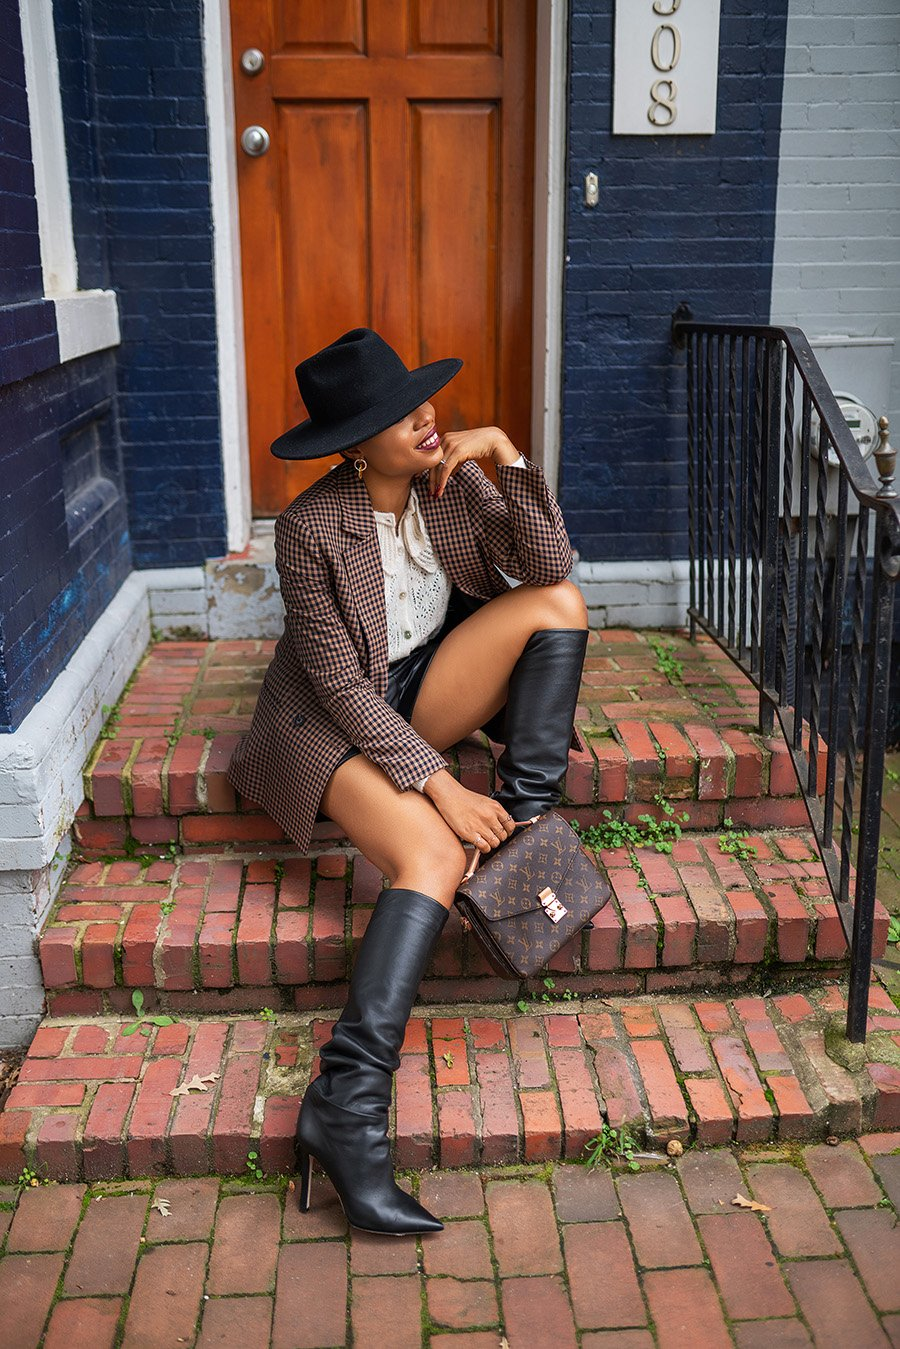 stella-adewunmi-of-jadore-fashion-blog-shares-how-to-style-leather-shorts-now